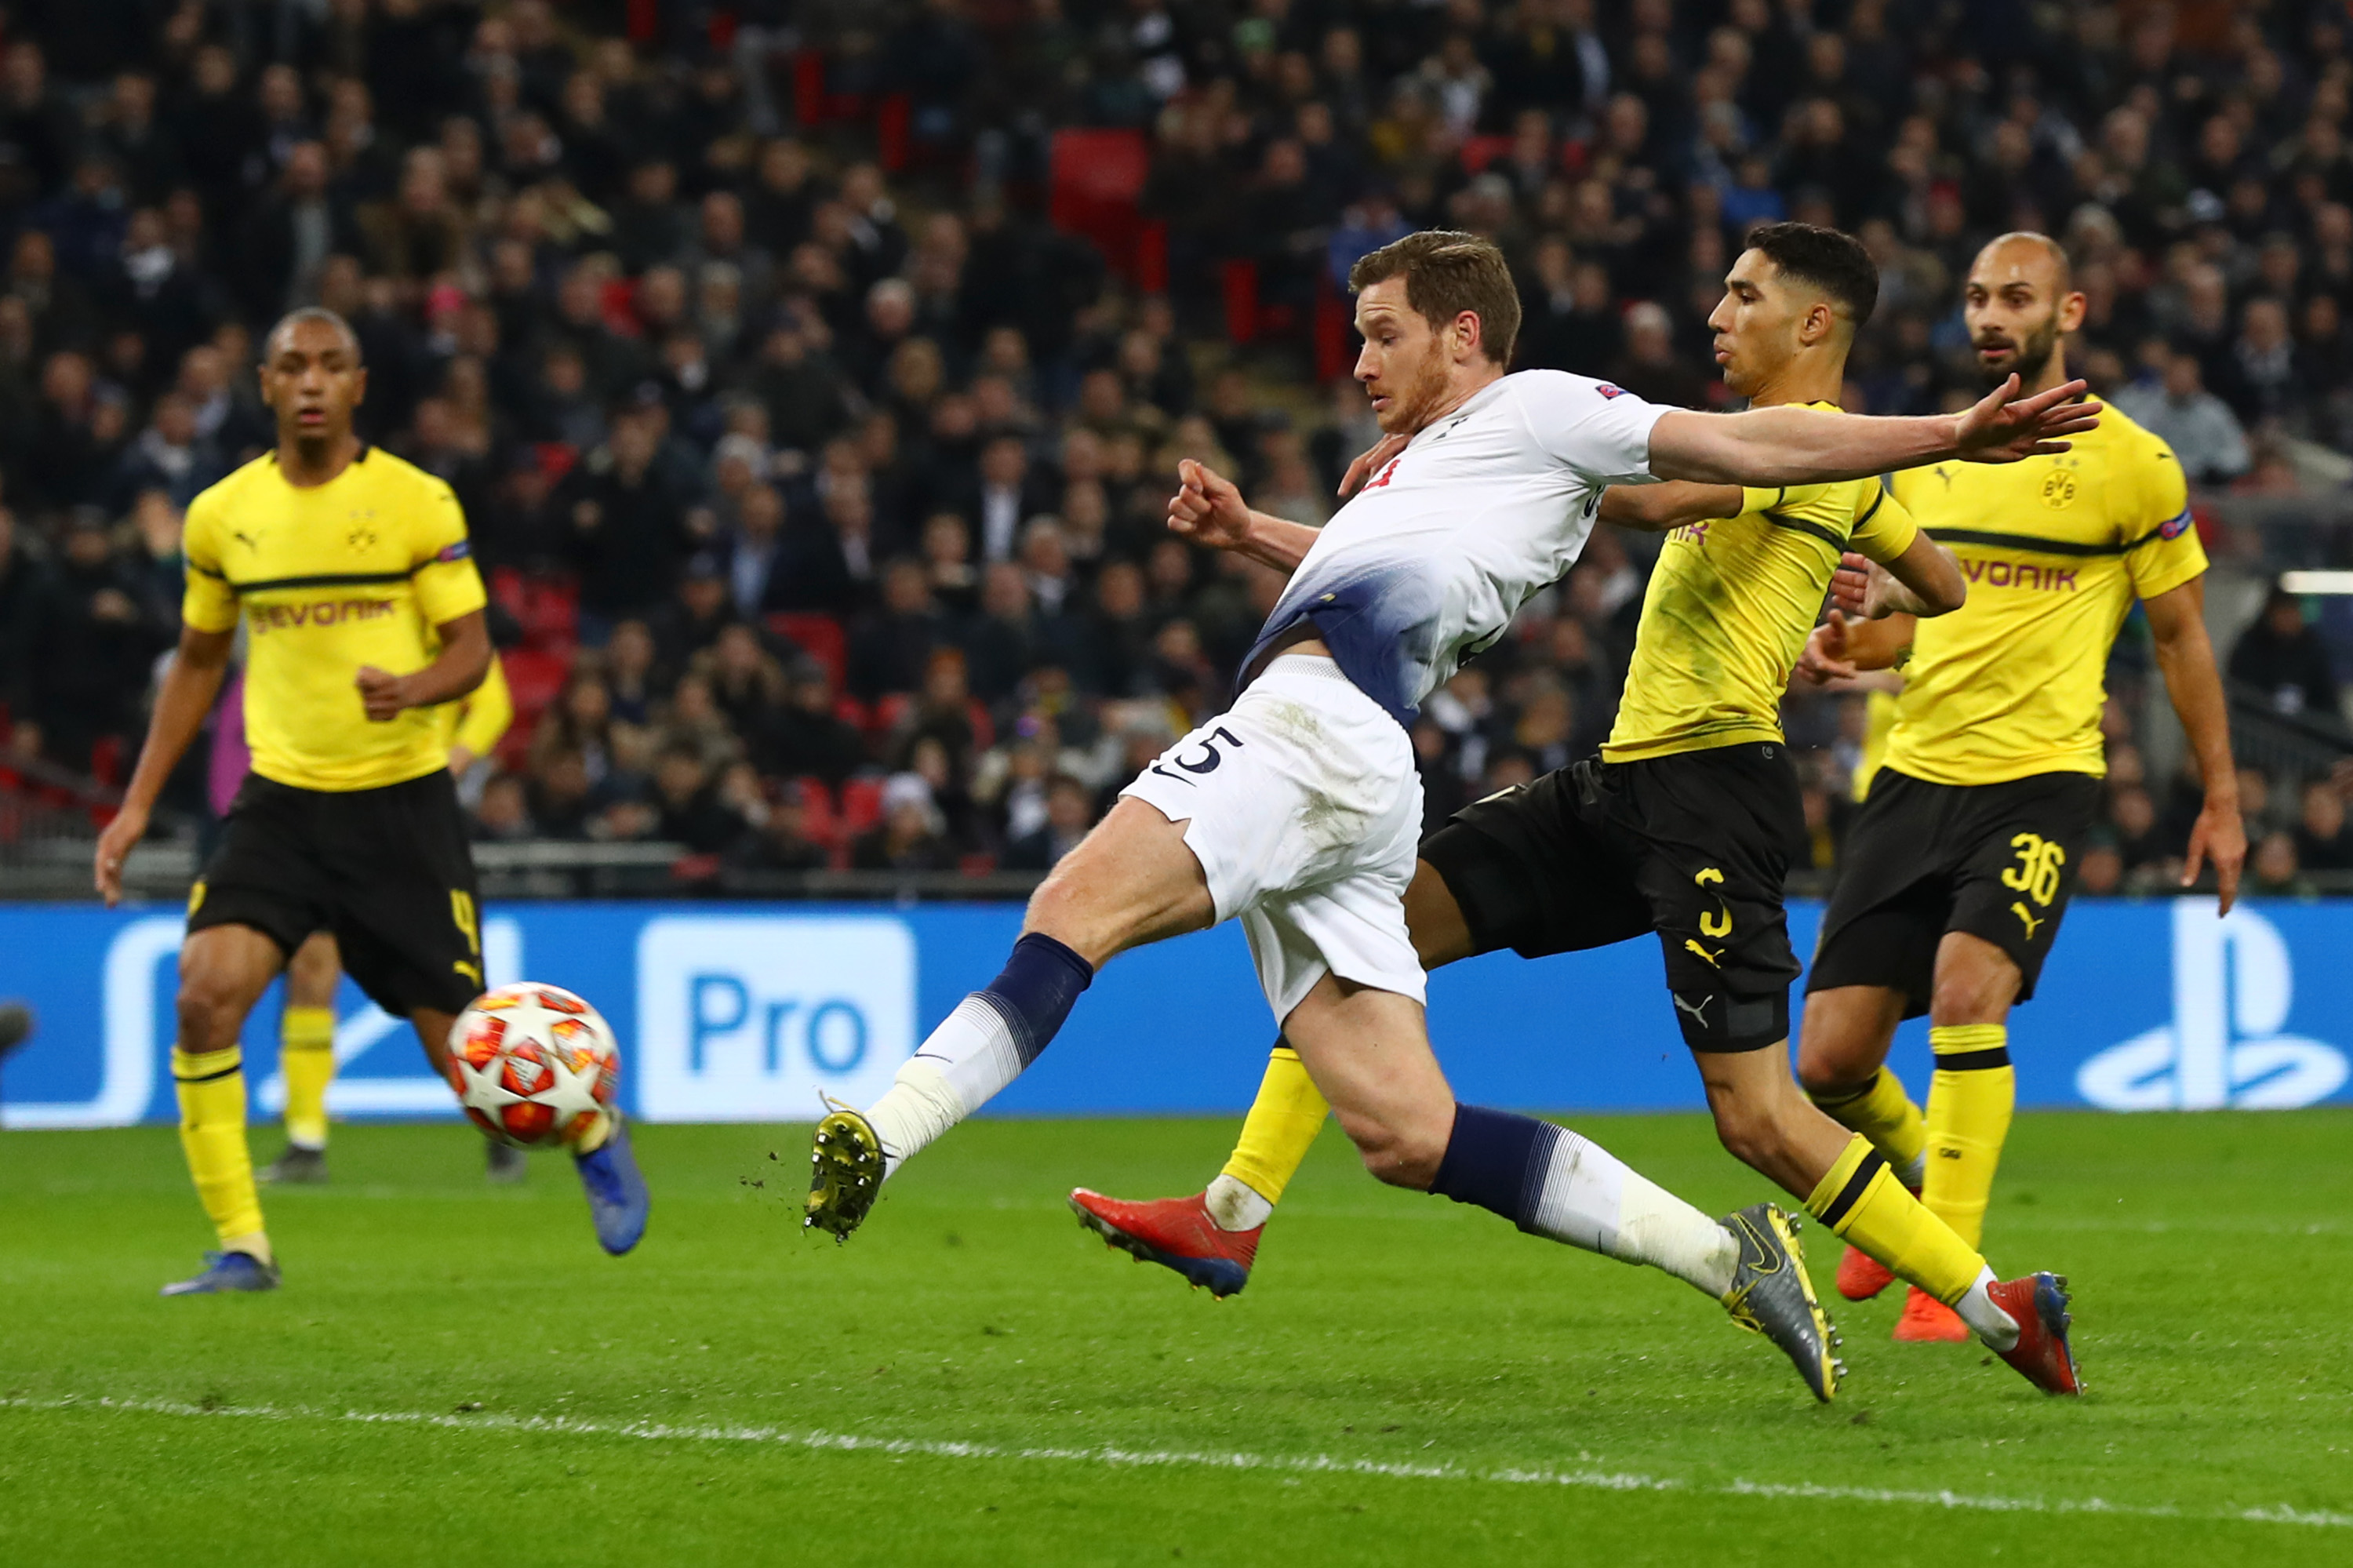 WATCH: Vertonghen, Llorente score late goals to pull away from Dortmund